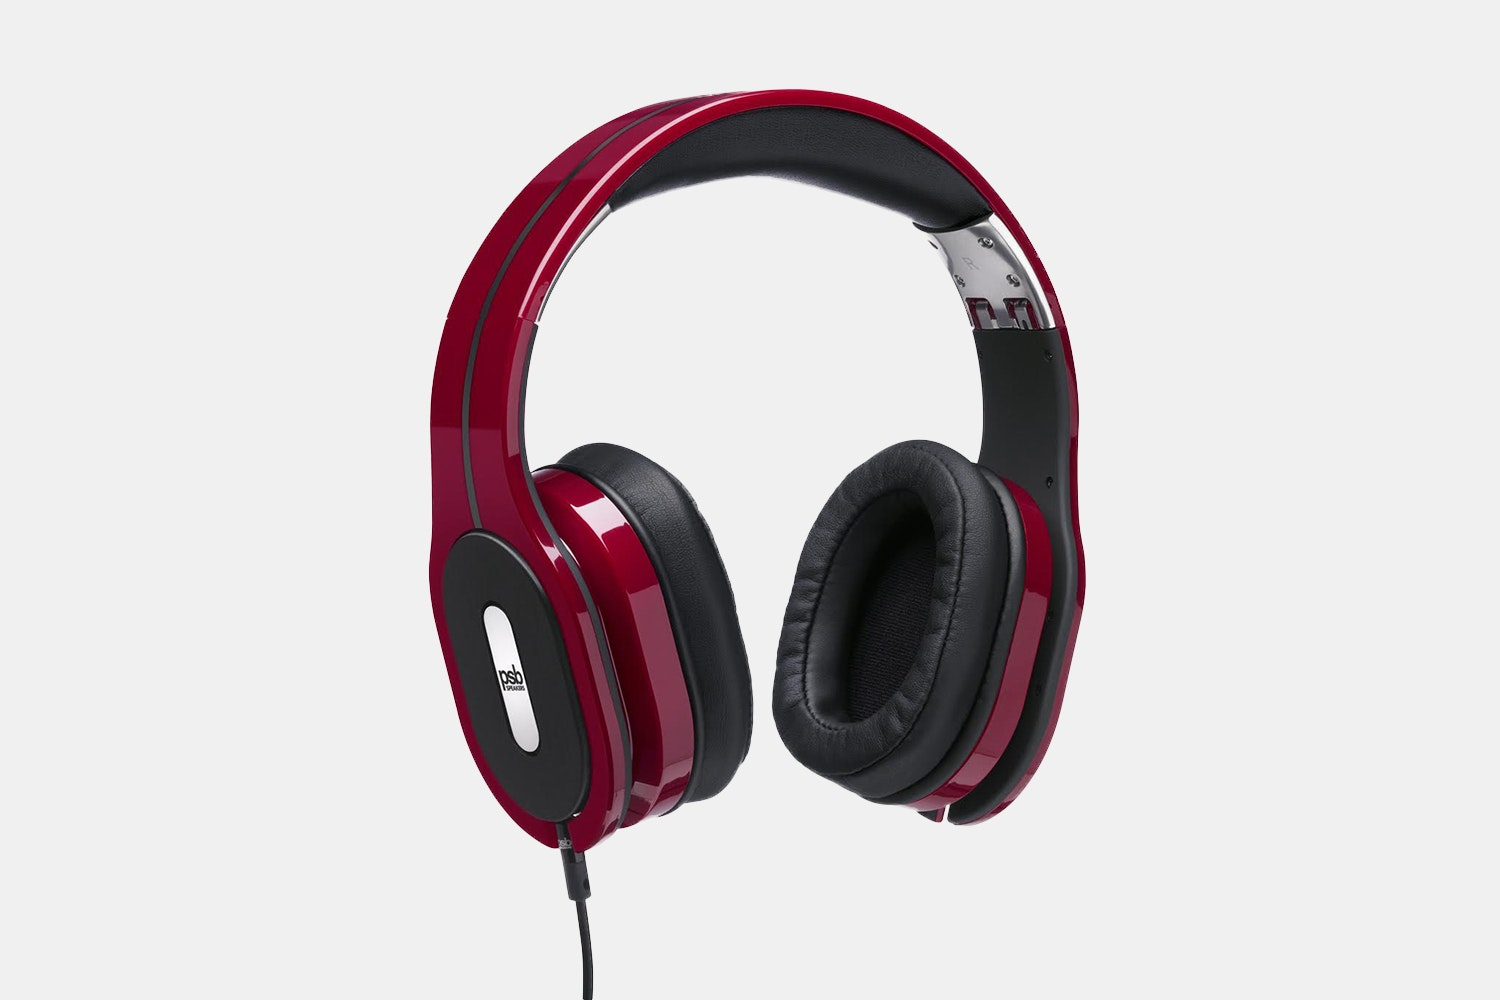 PSB M4U 1 & M4U 2 Headphones